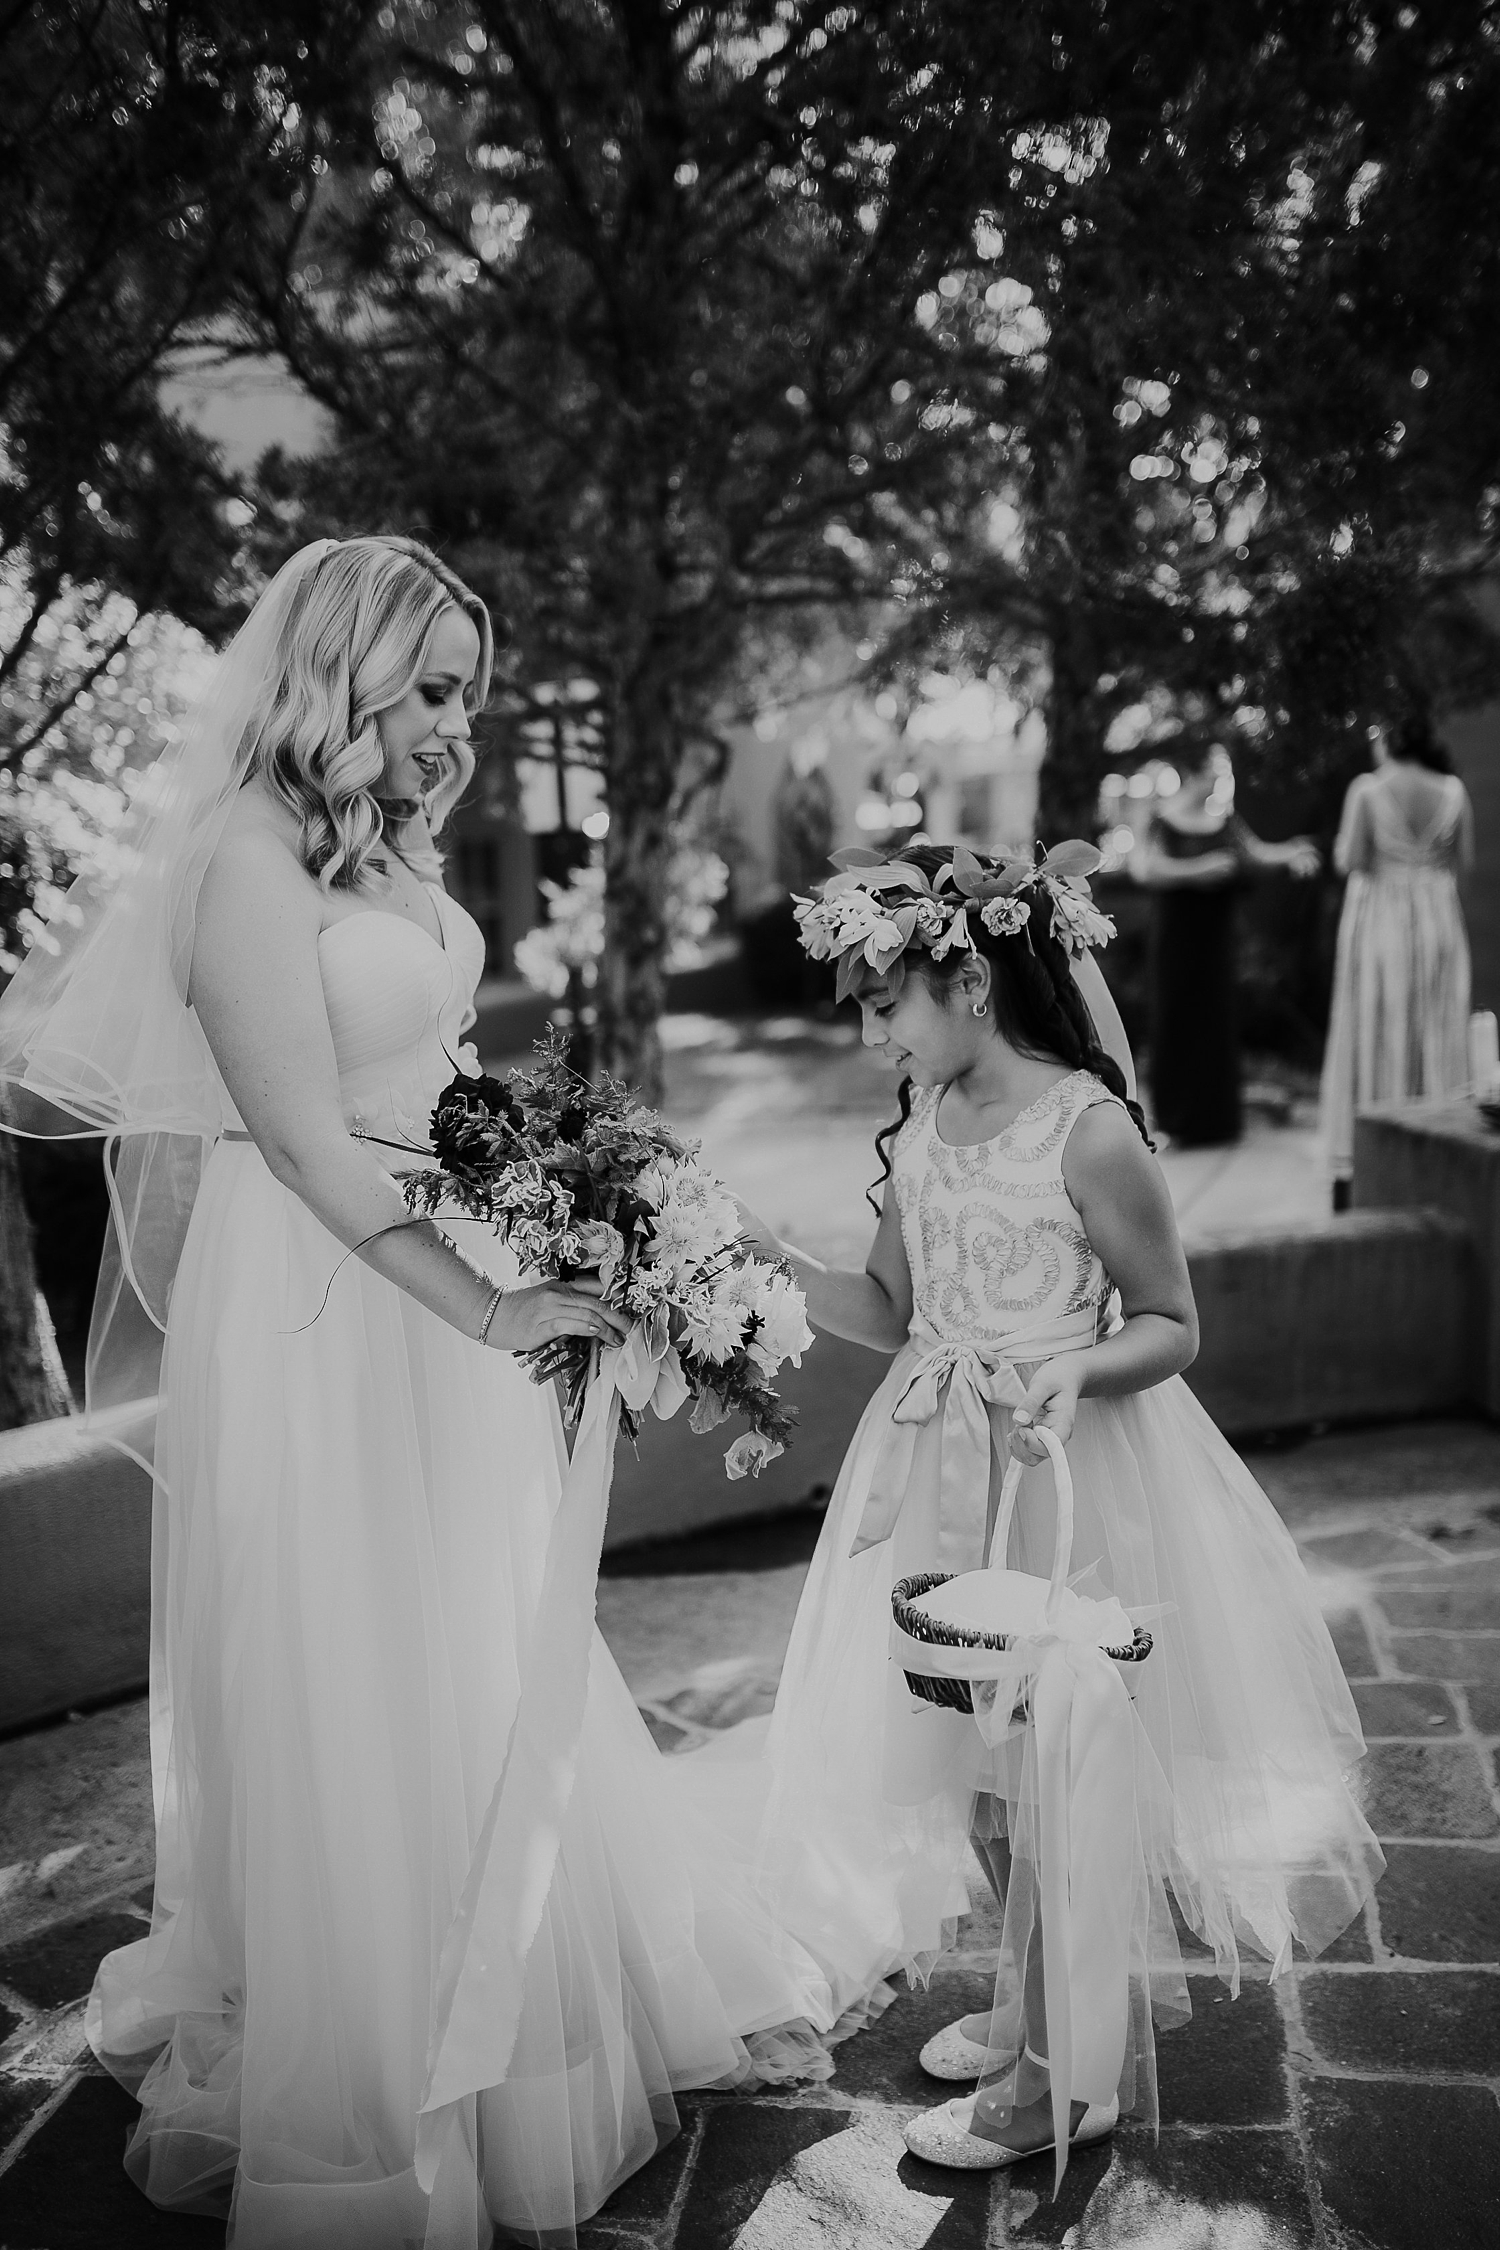 Alicia+lucia+photography+-+albuquerque+wedding+photographer+-+santa+fe+wedding+photography+-+new+mexico+wedding+photographer+-+la+ posada+santa+fe+wedding_0022.jpg